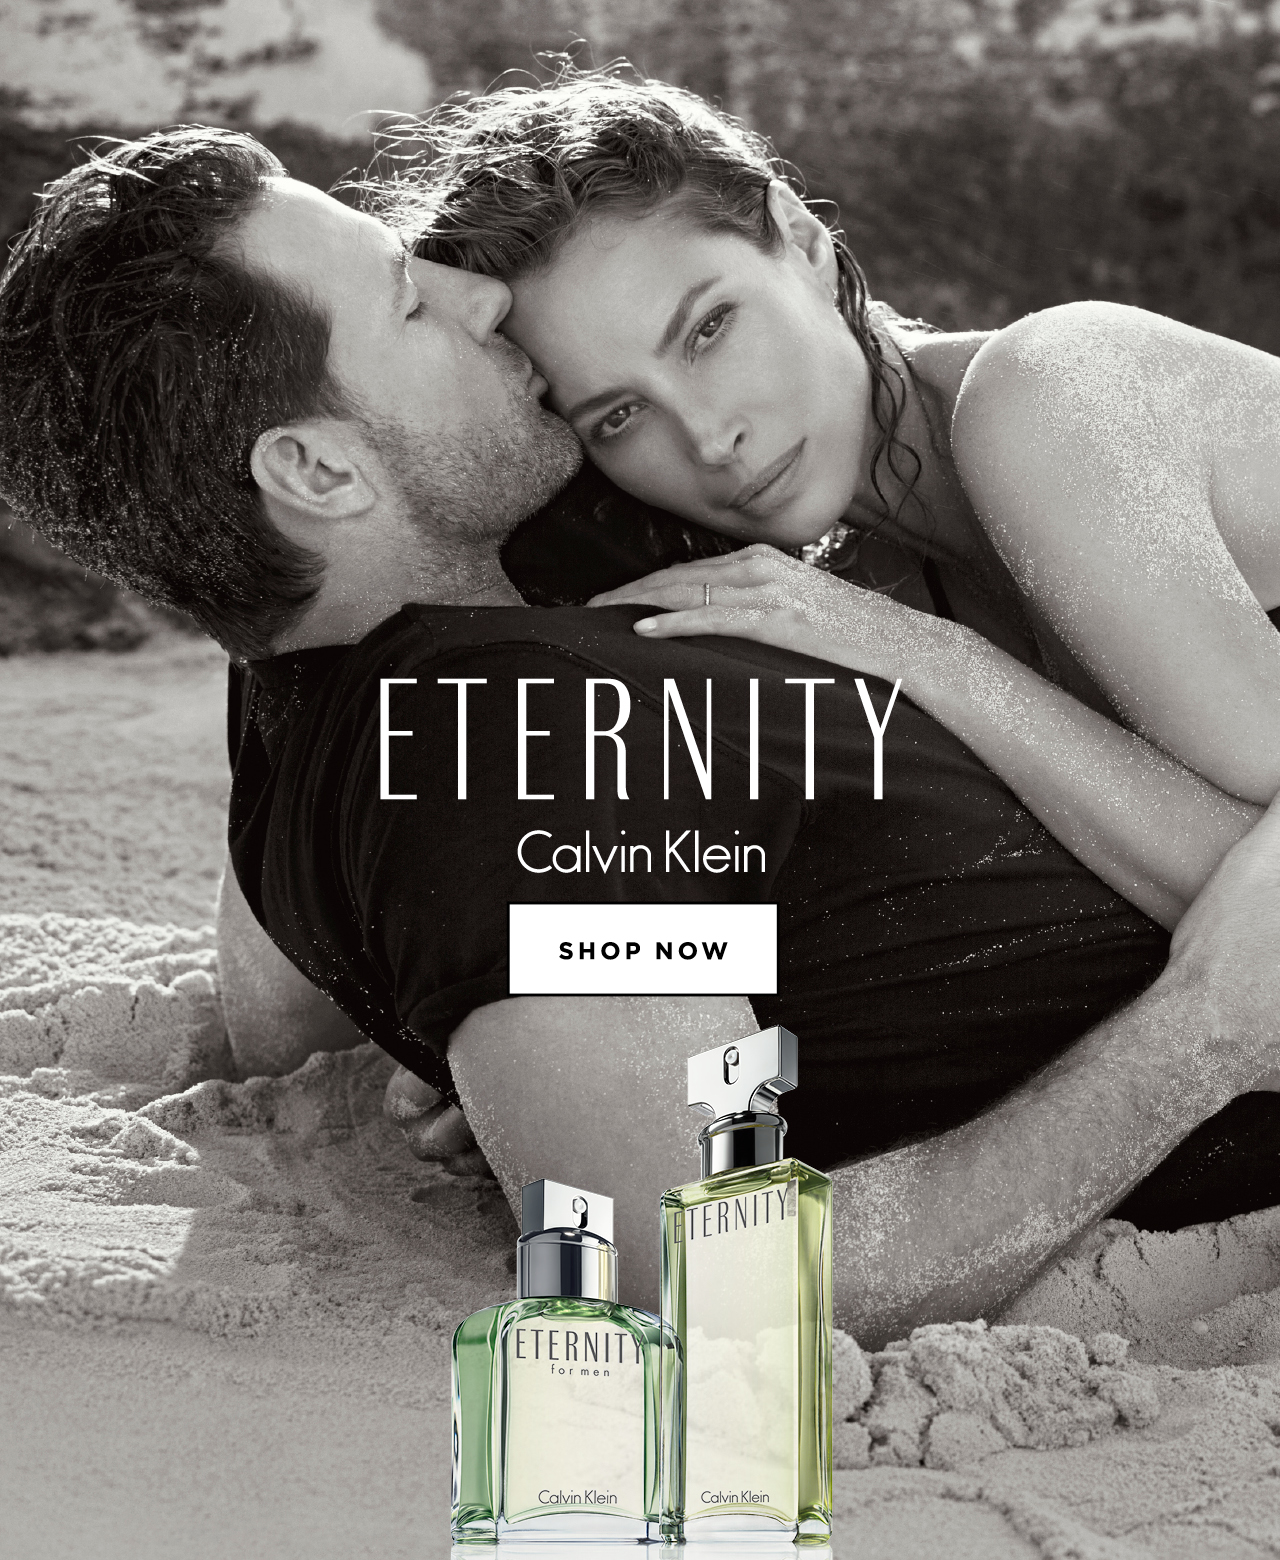 Calvin Klein Eternity Shop Now